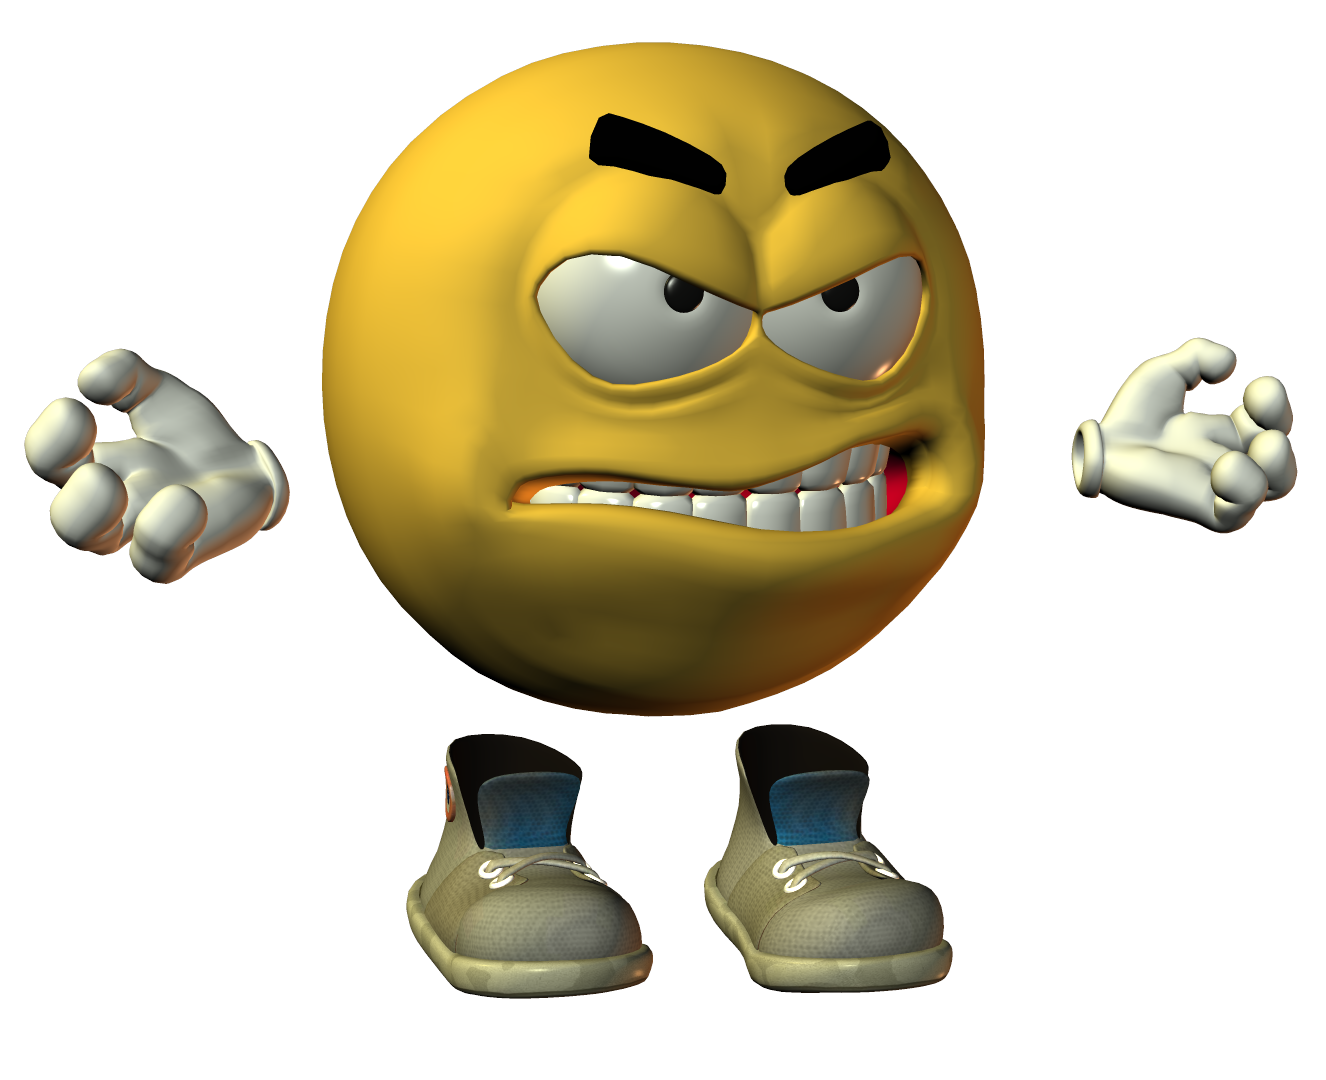 Pin by April on emojis in 2020 Current mood meme, Funny